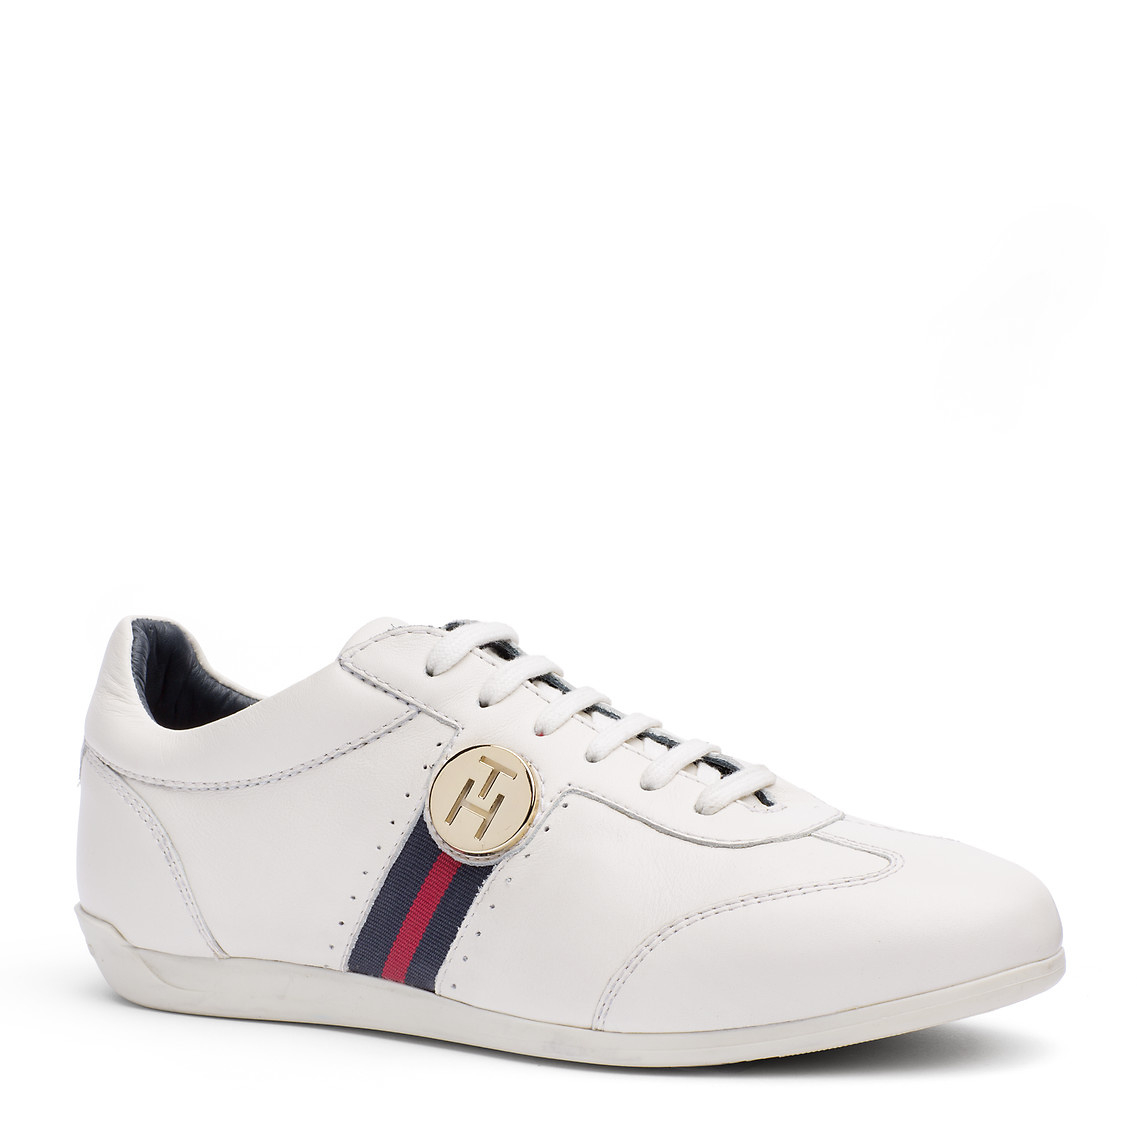 sneaker tommy hilfiger herren tommy hilfiger roddick 2 herren wild leder halb schuhe sneaker. Black Bedroom Furniture Sets. Home Design Ideas